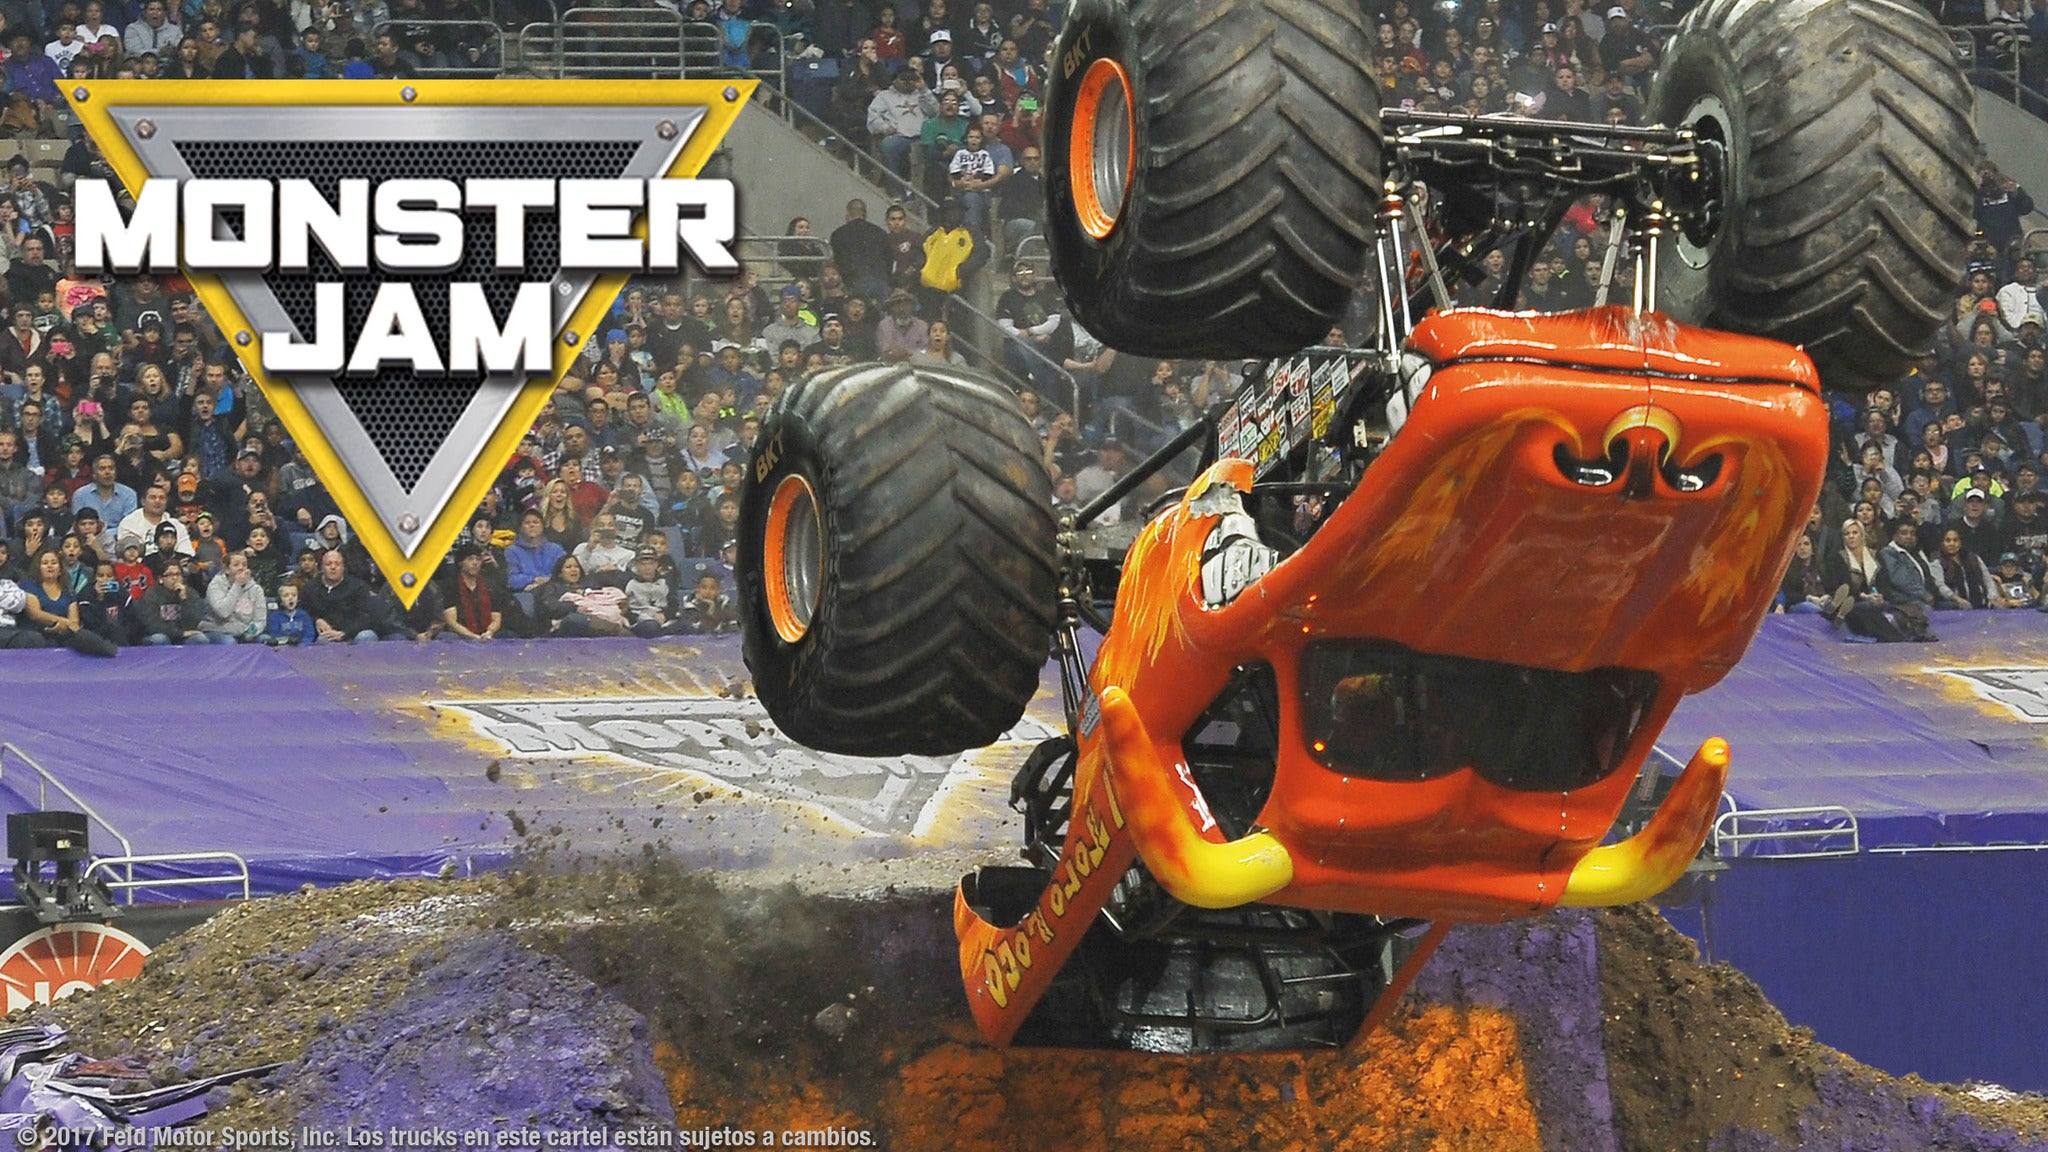 Monster Jam at Macon Centreplex Coliseum